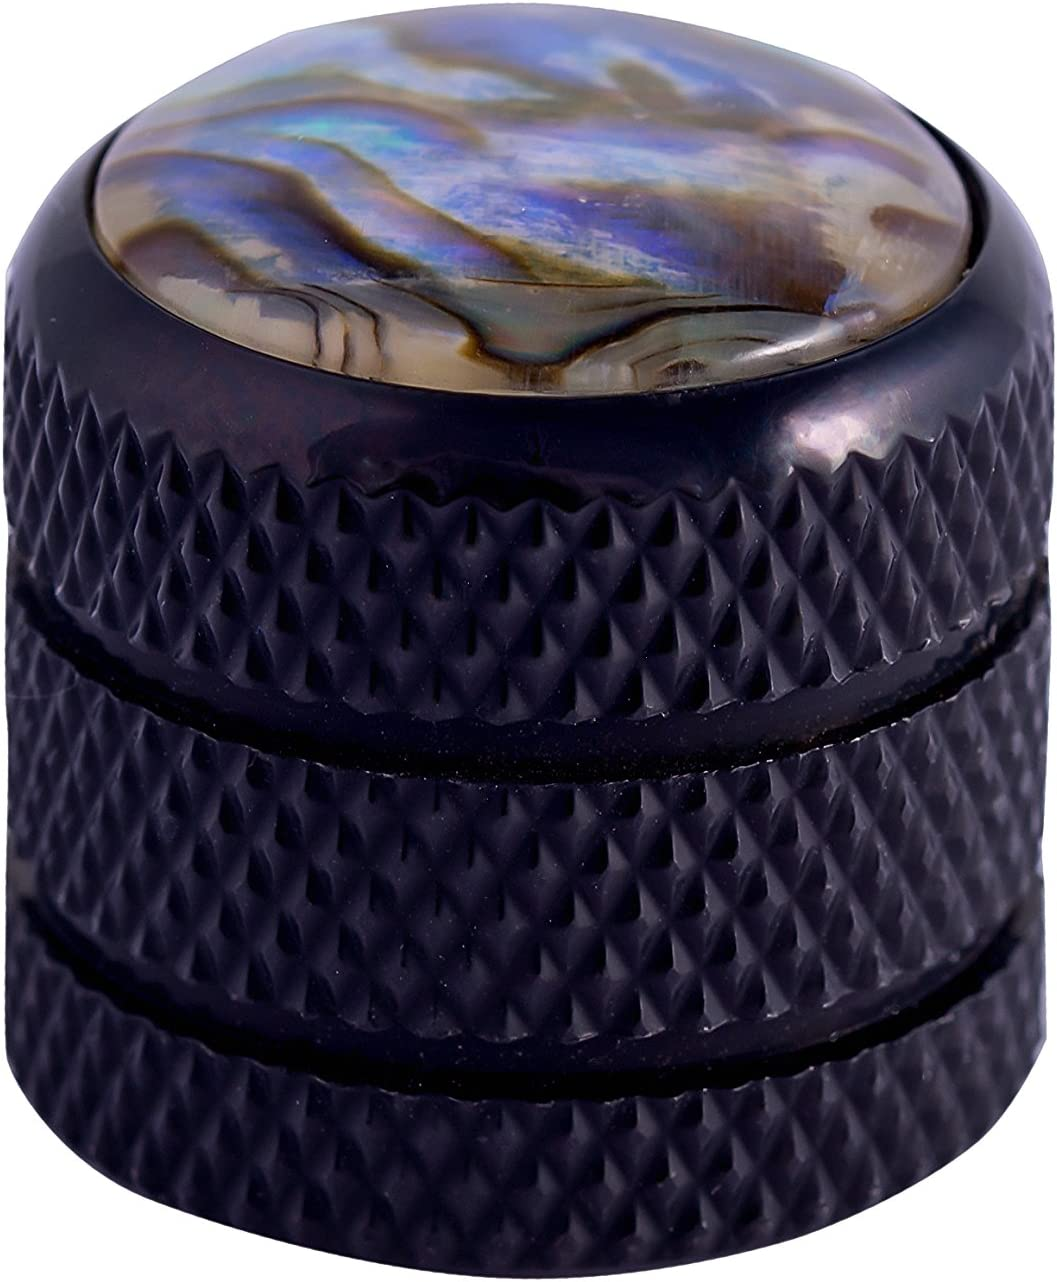 GUYKER Black Abalone Top Dome Knobs Replacement for Tele Telecaster Electric Guitar 1pc